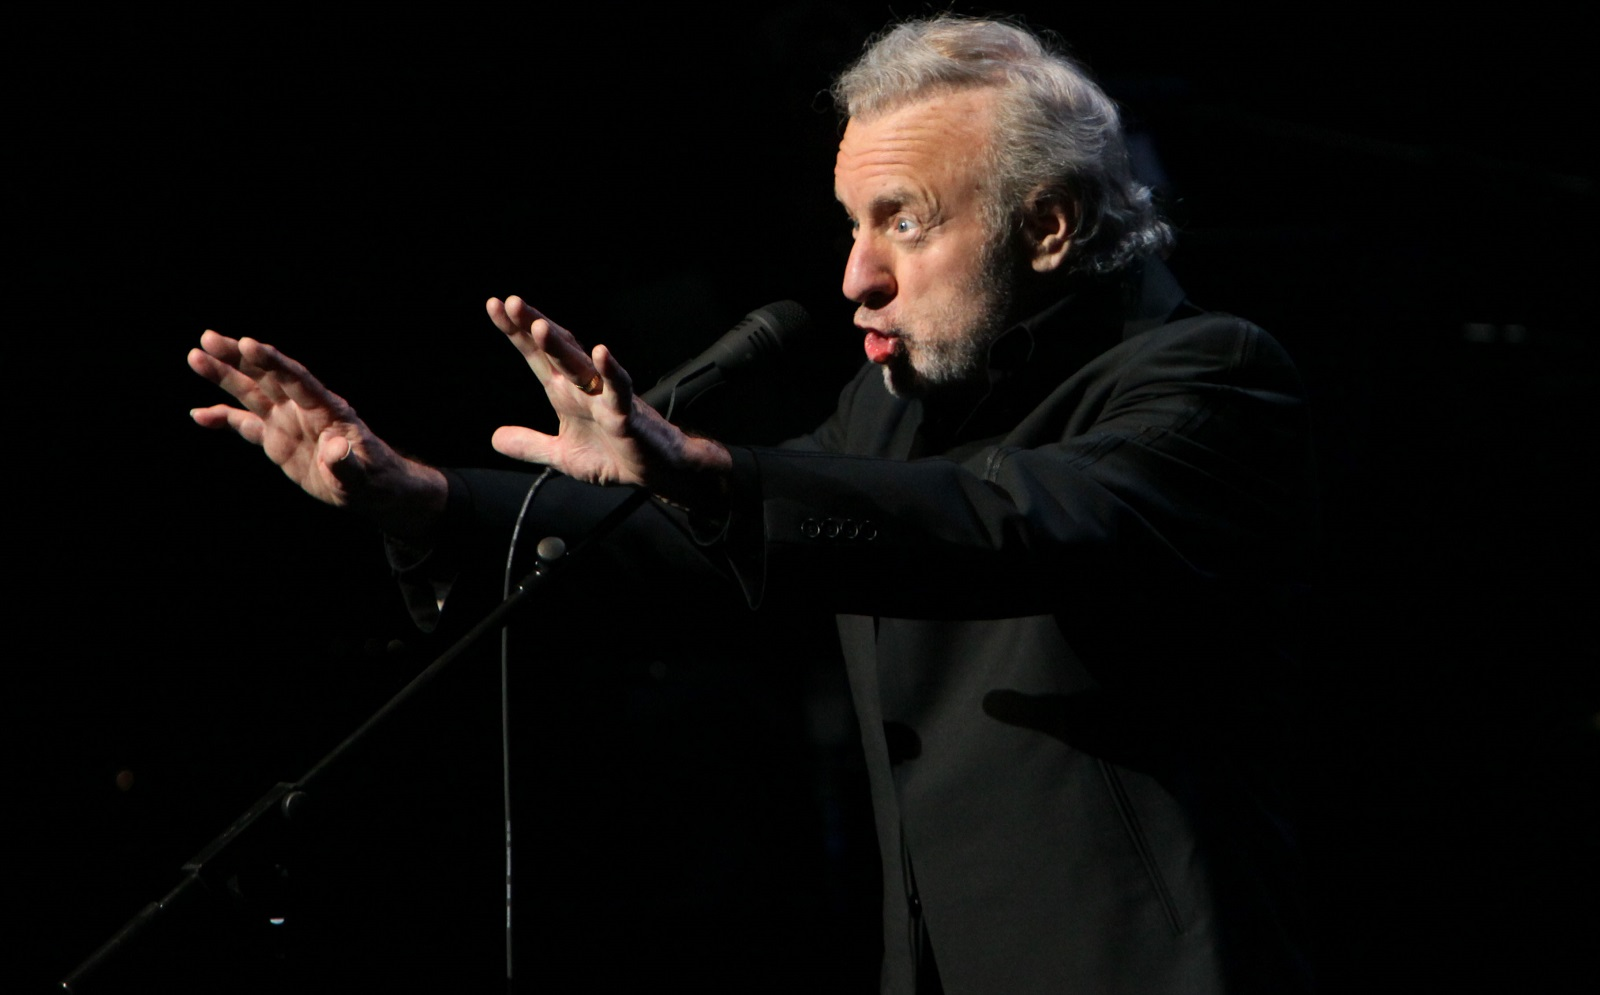 Colm Wilkinson, performing at the University at Buffalo in 2009, returns to the same venue on Nov. 26. (Buffalo News file photo)